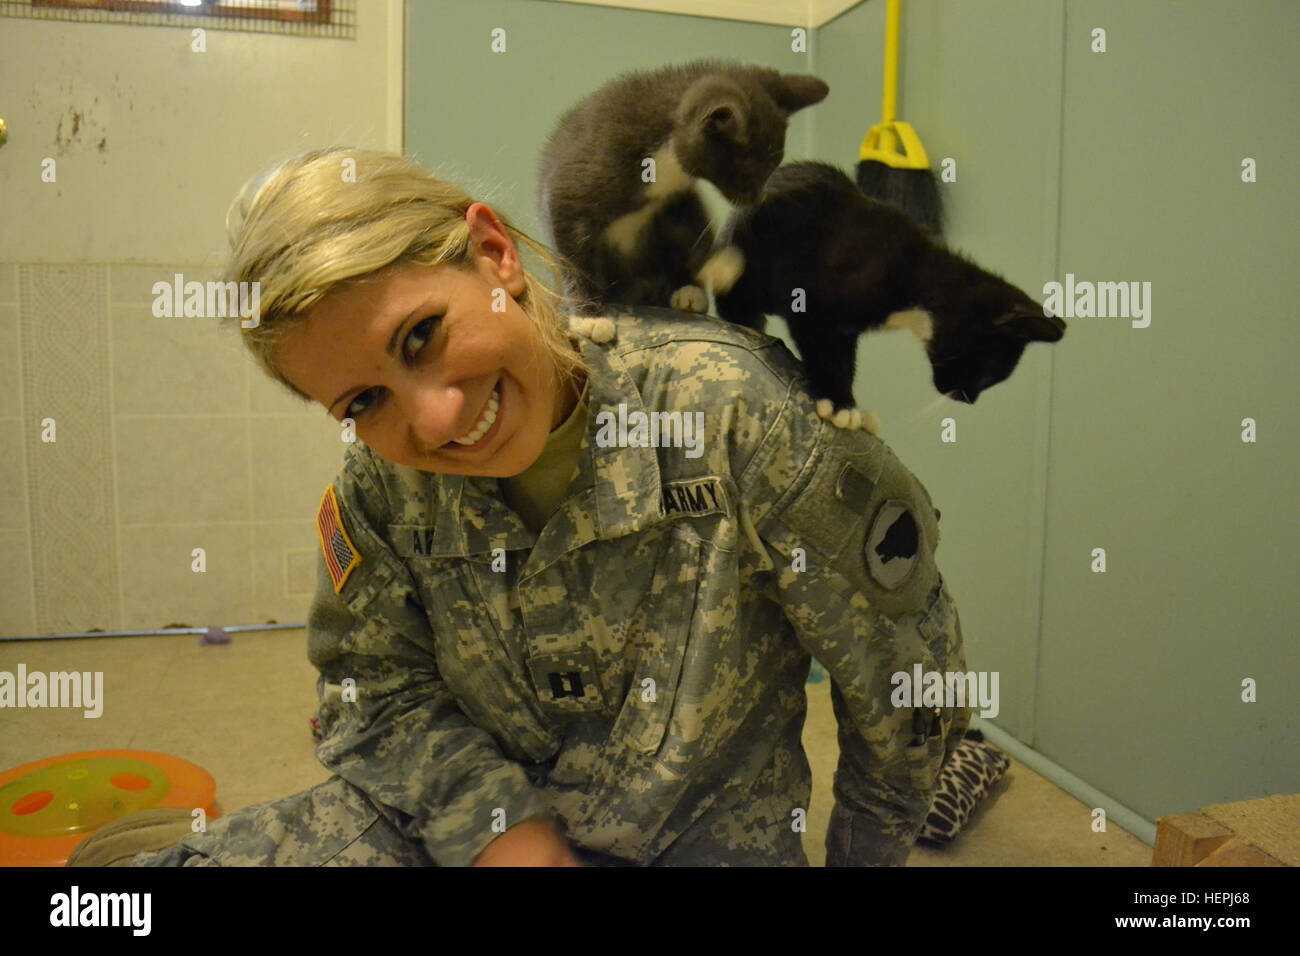 Capt. Cheryl Abbate, of 1st Brigade, 104th Division, socializes with the kittens at the Animal Refuge Center. Capt. - Stock Image